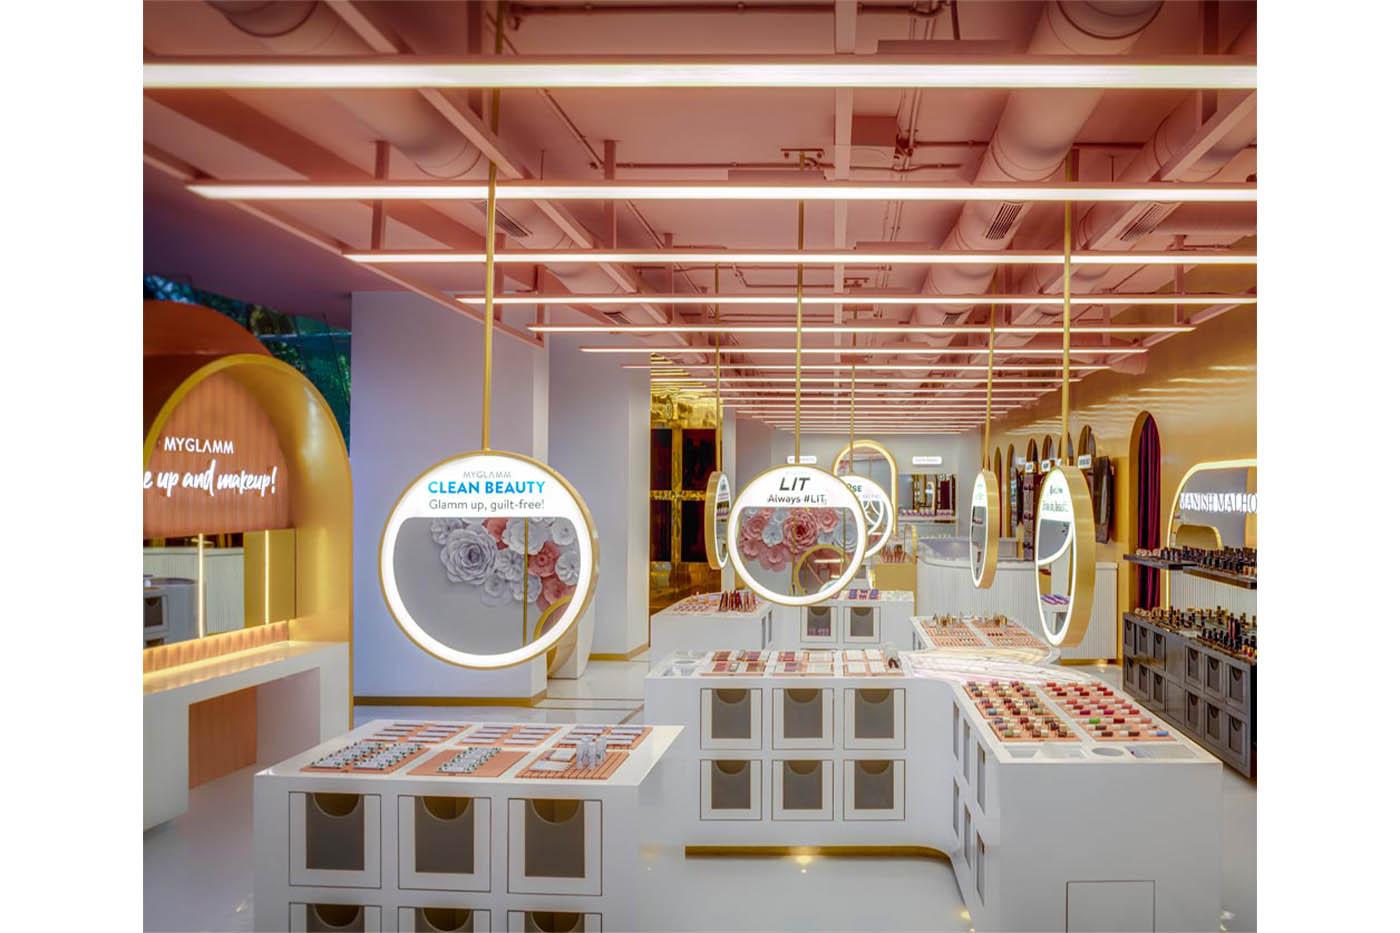 2. MyGlamm launches largest experiential store in Mumbai